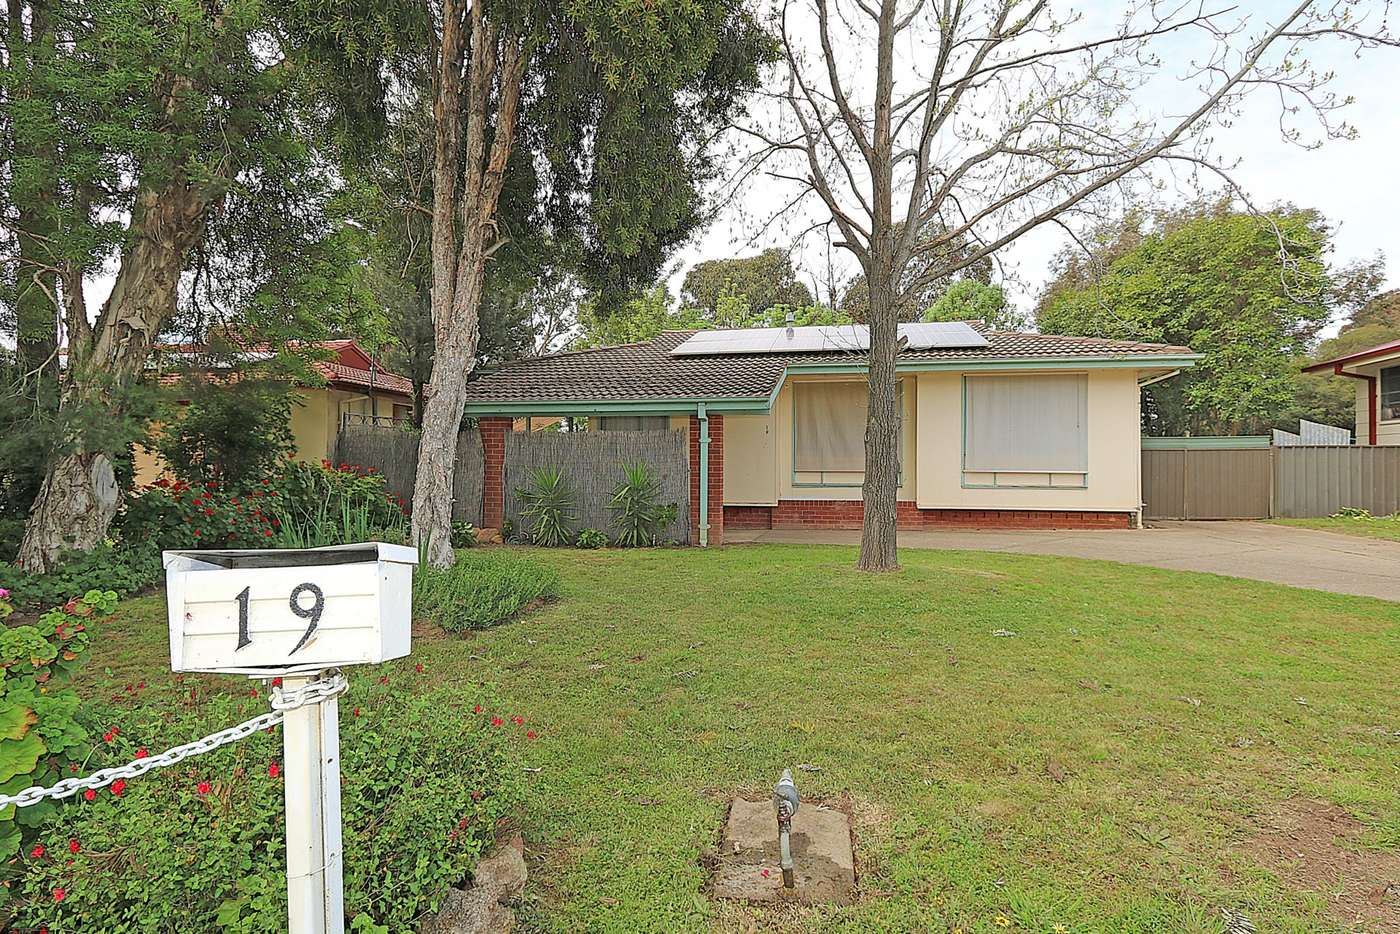 Main view of Homely house listing, 19 Awaba Avenue, Tolland NSW 2650